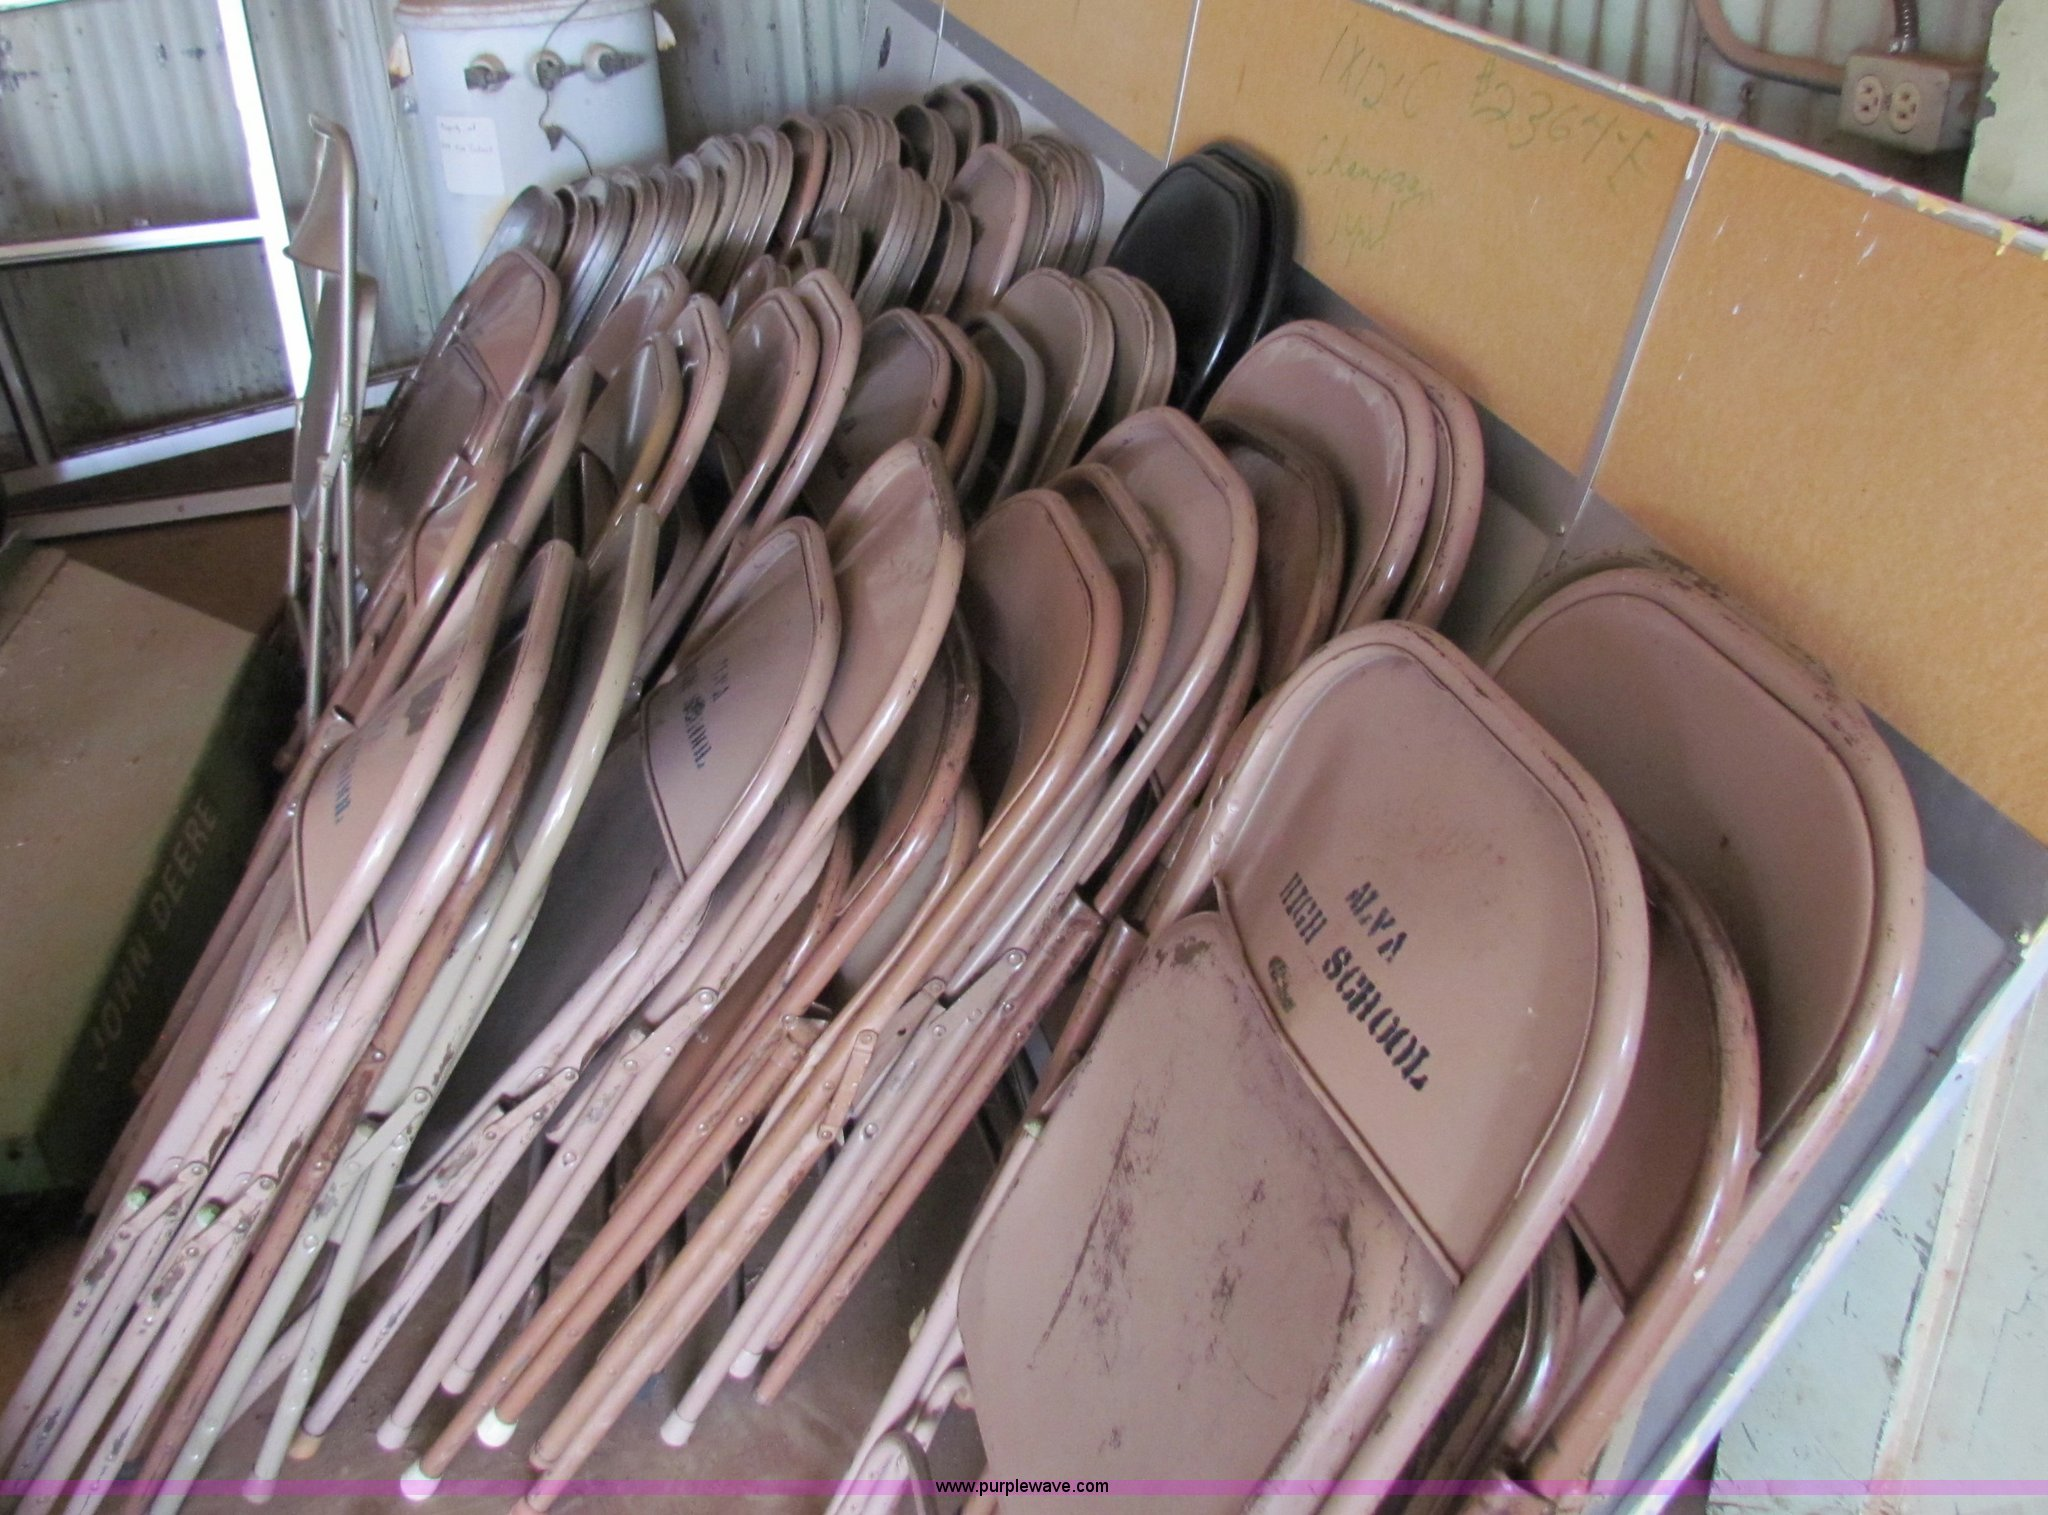 214 assorted metal folding chairs Item N9106